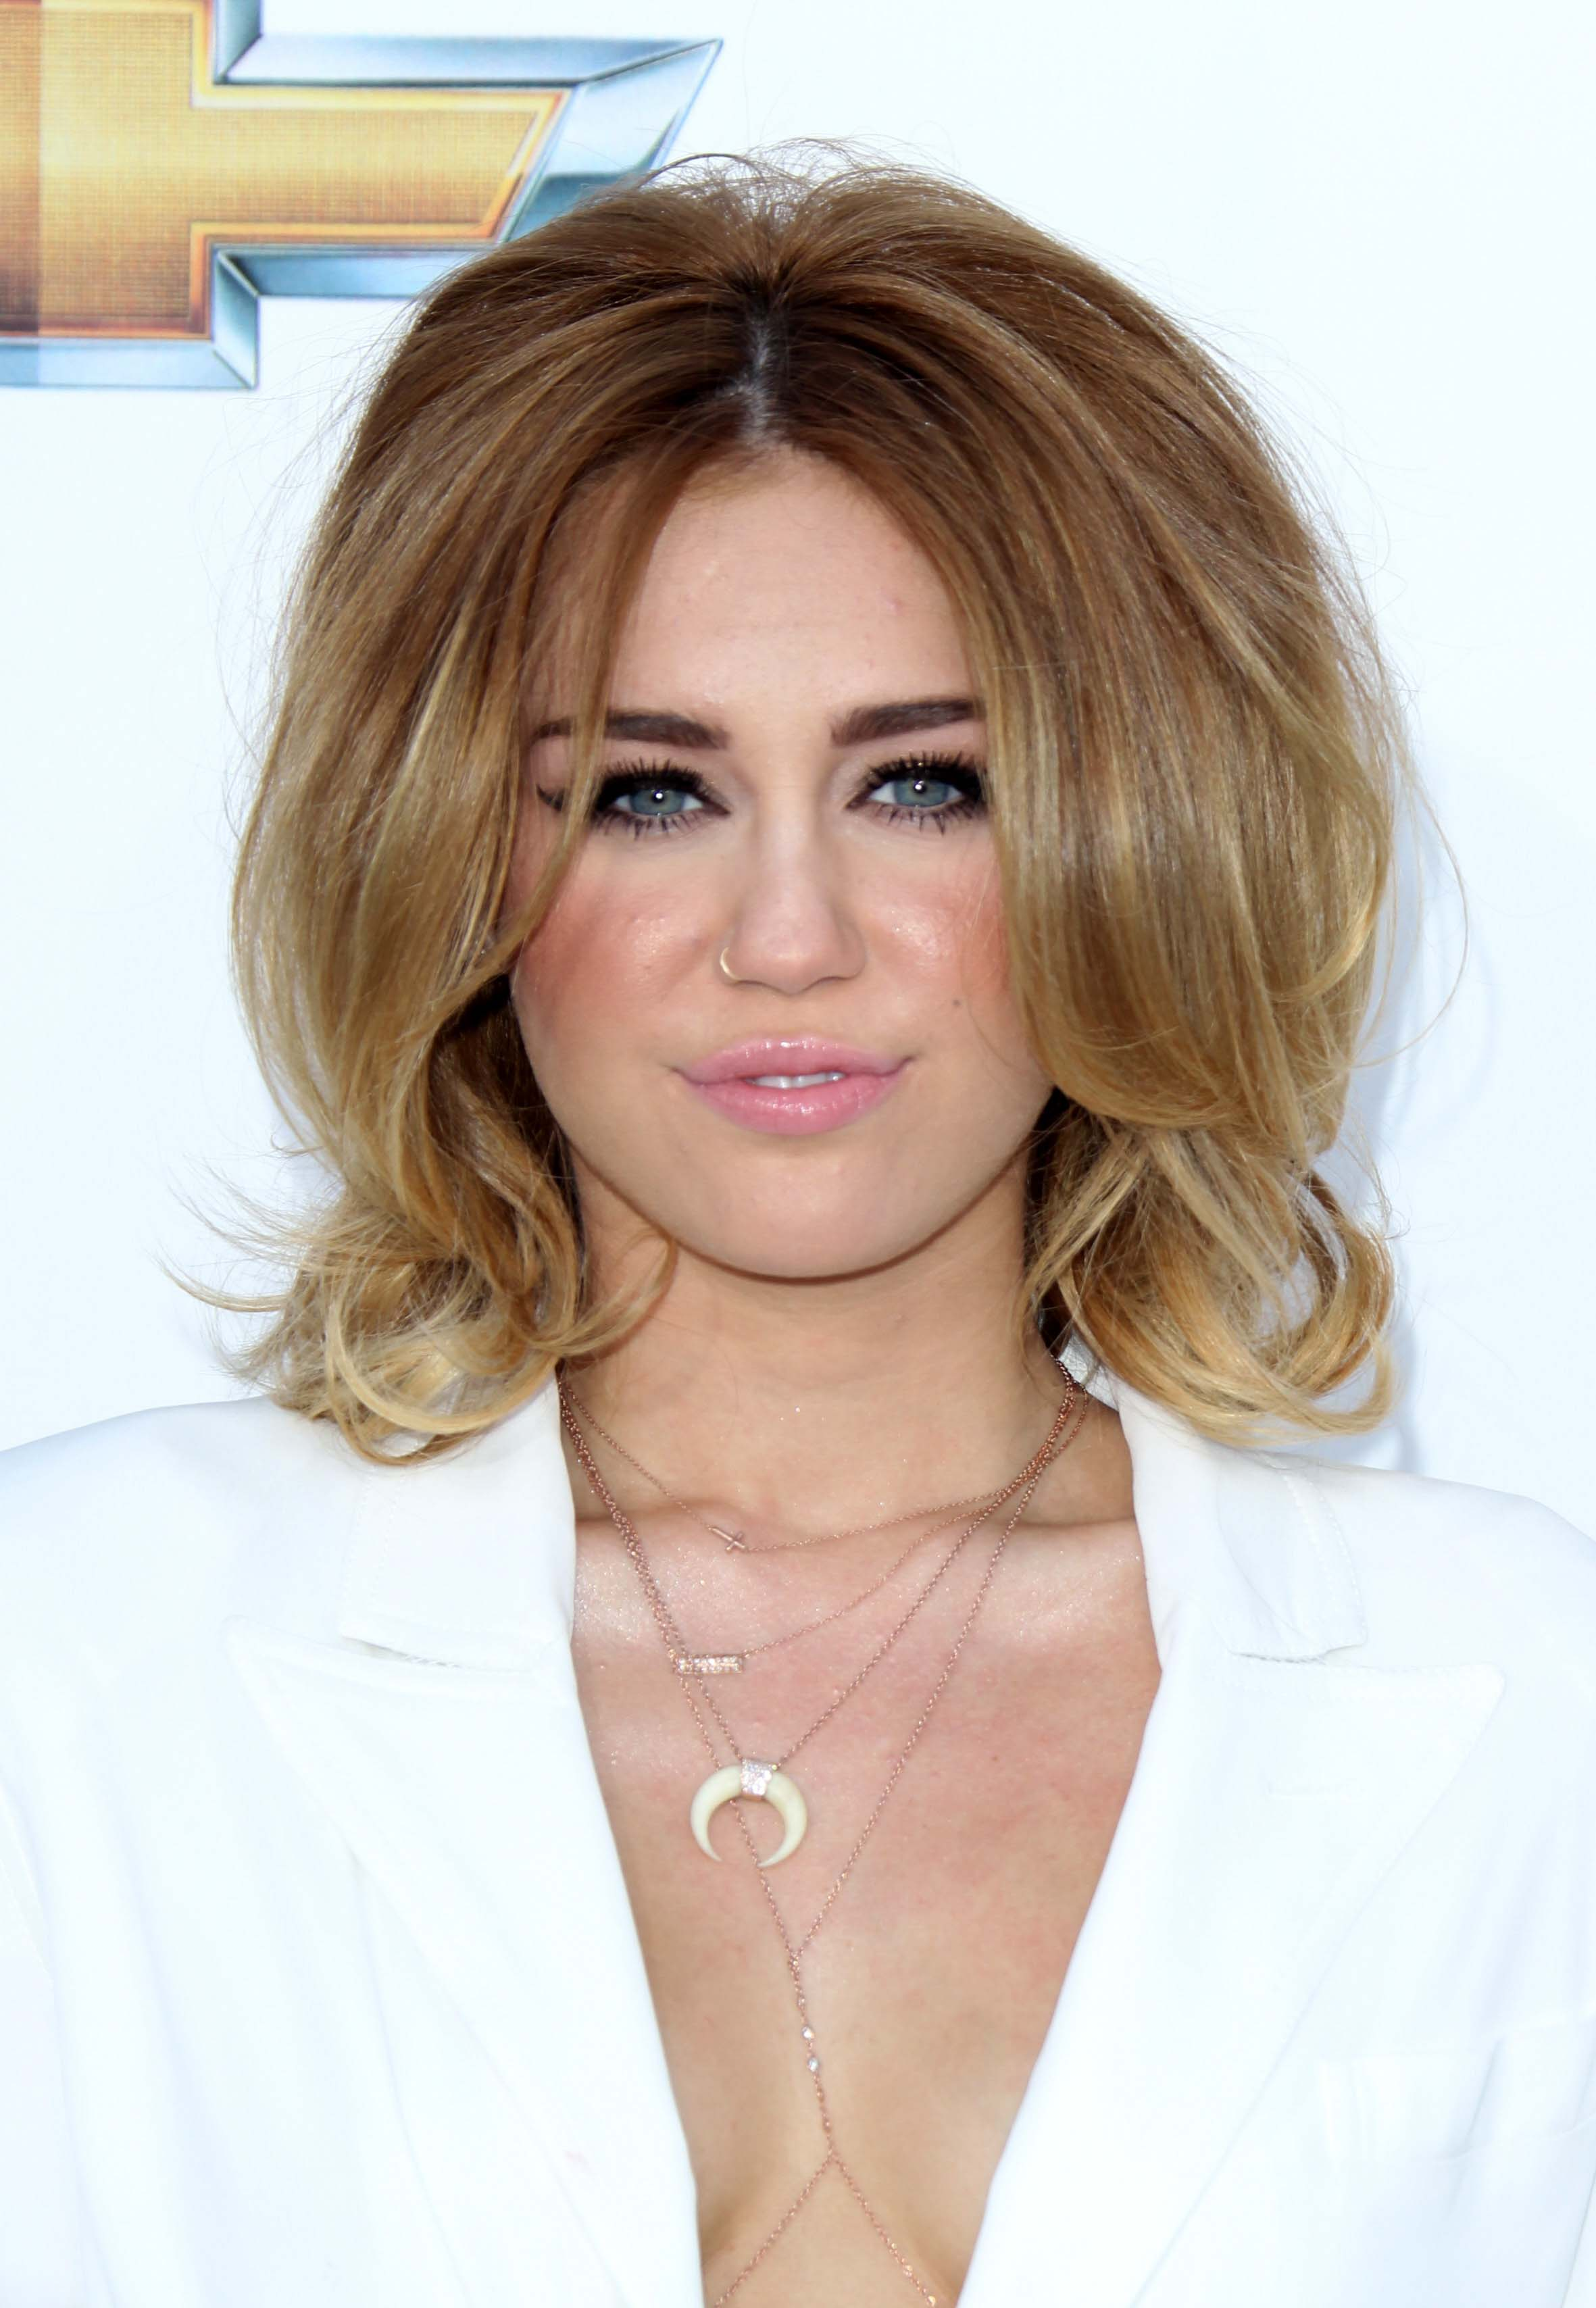 Miley Cyrus's Blow Out Shag